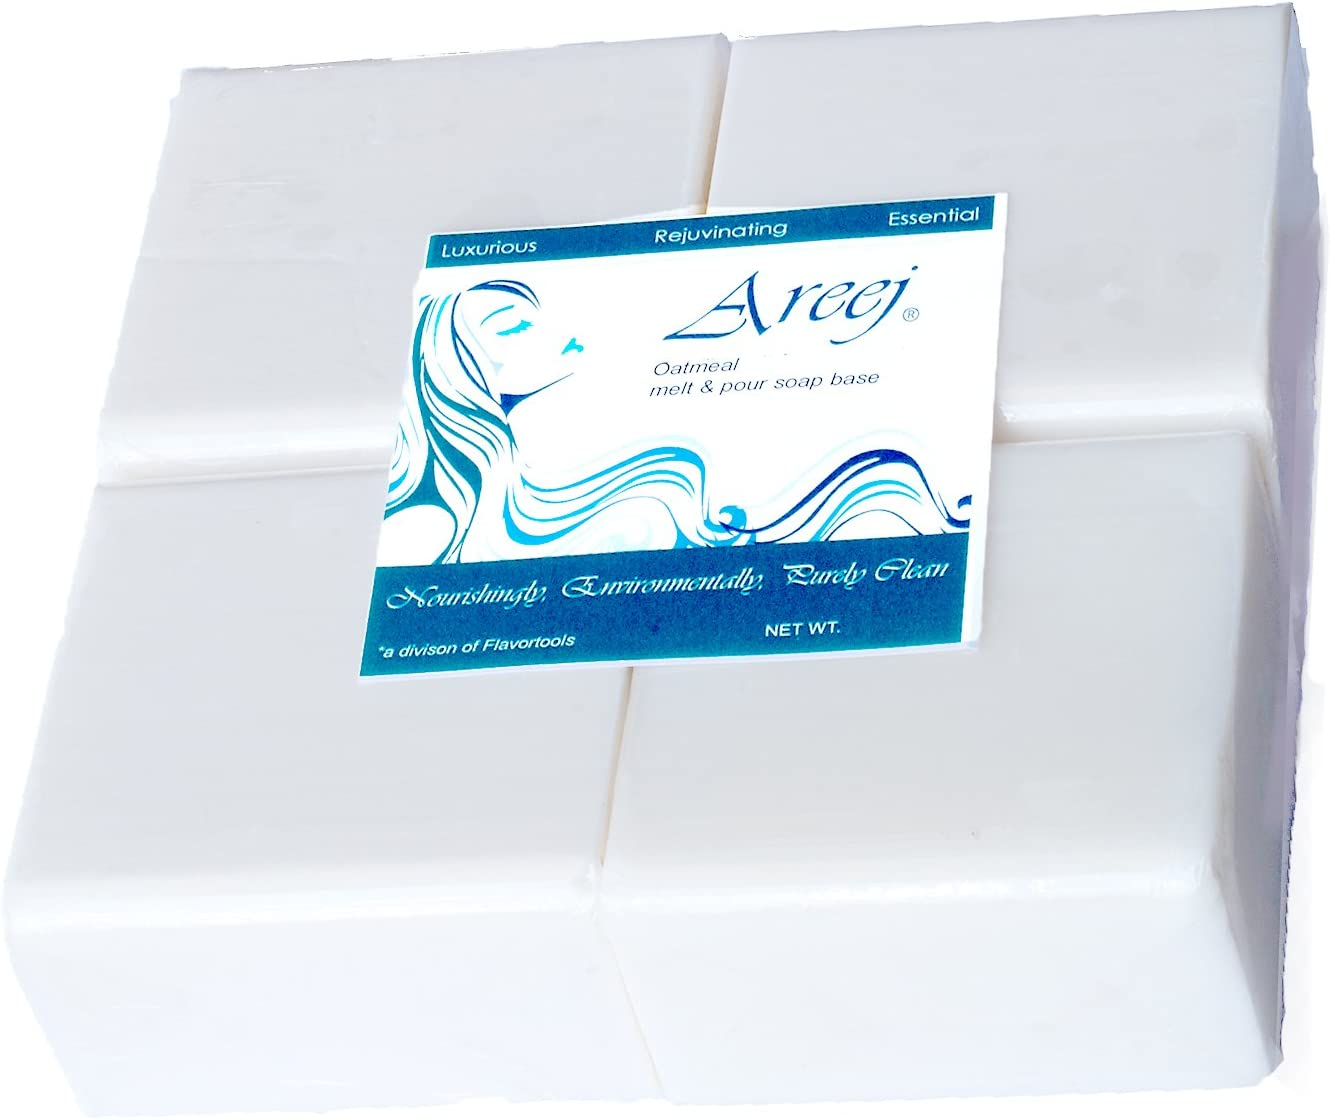 Areej Hypo-Allergenic Biodegradable Goats Milk Soap Base made with 100/% Pure Natural Glycerin 5 Pounds